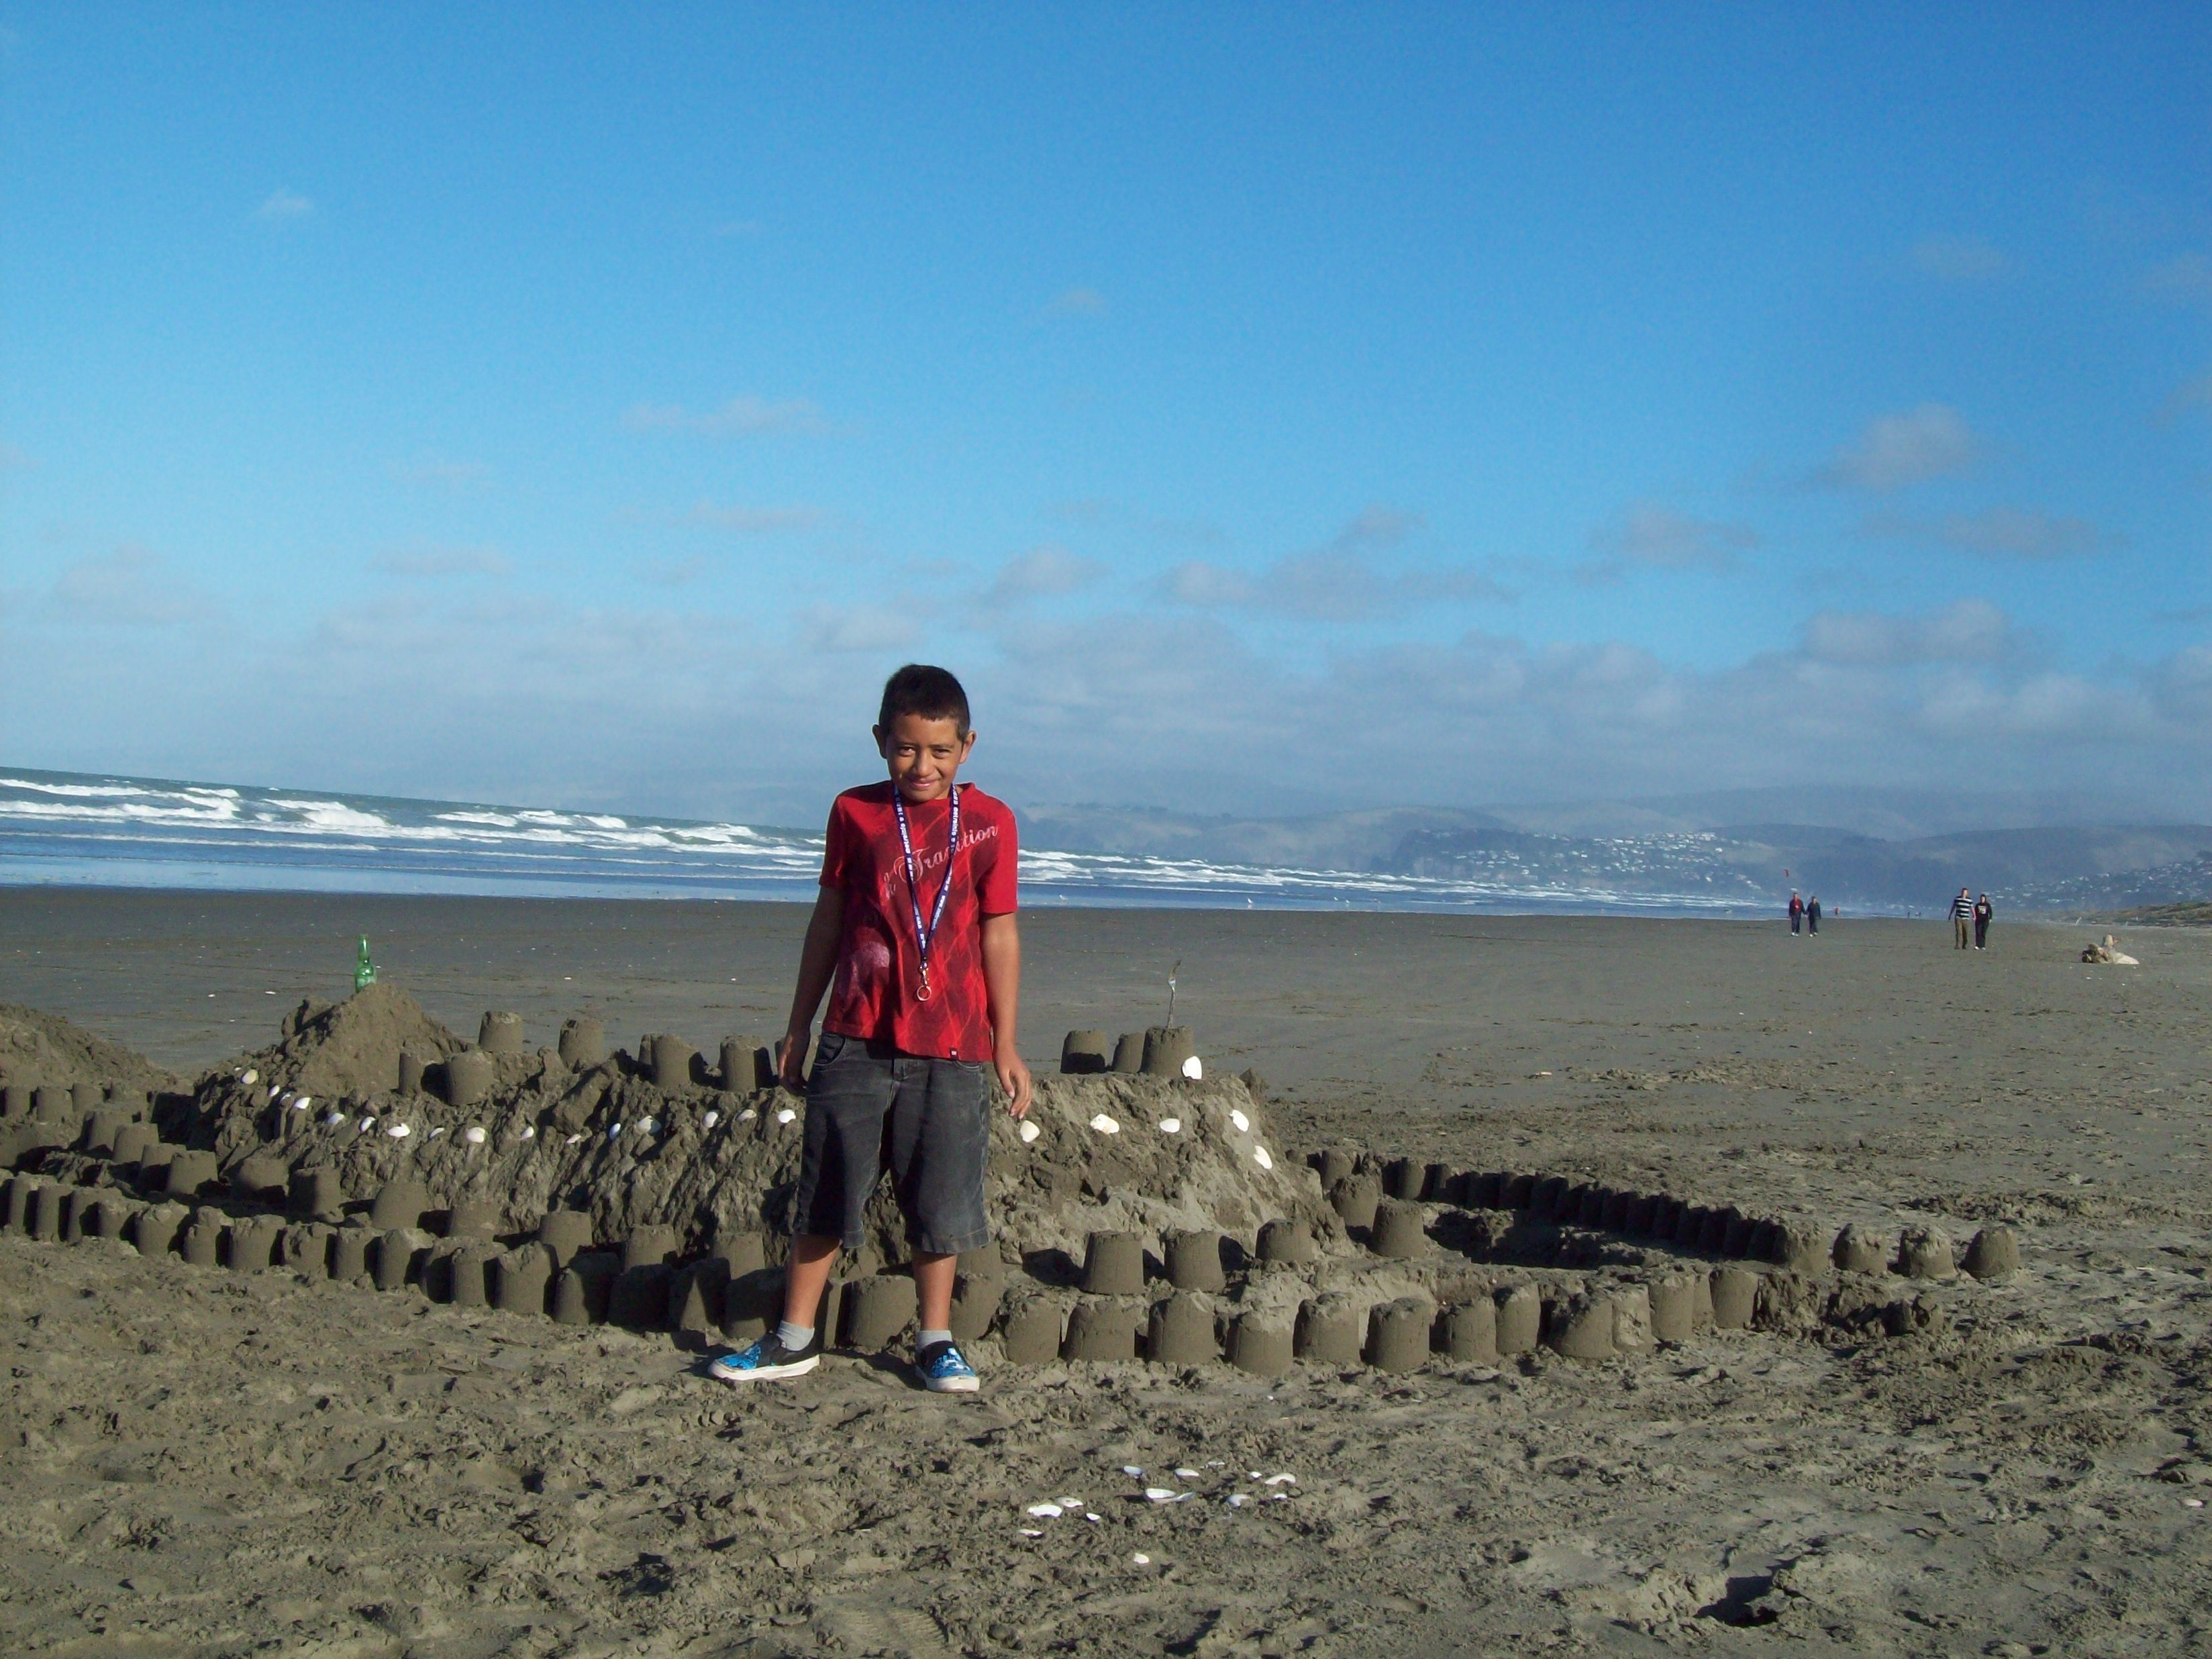 Master toa and his sand castle at new br photo